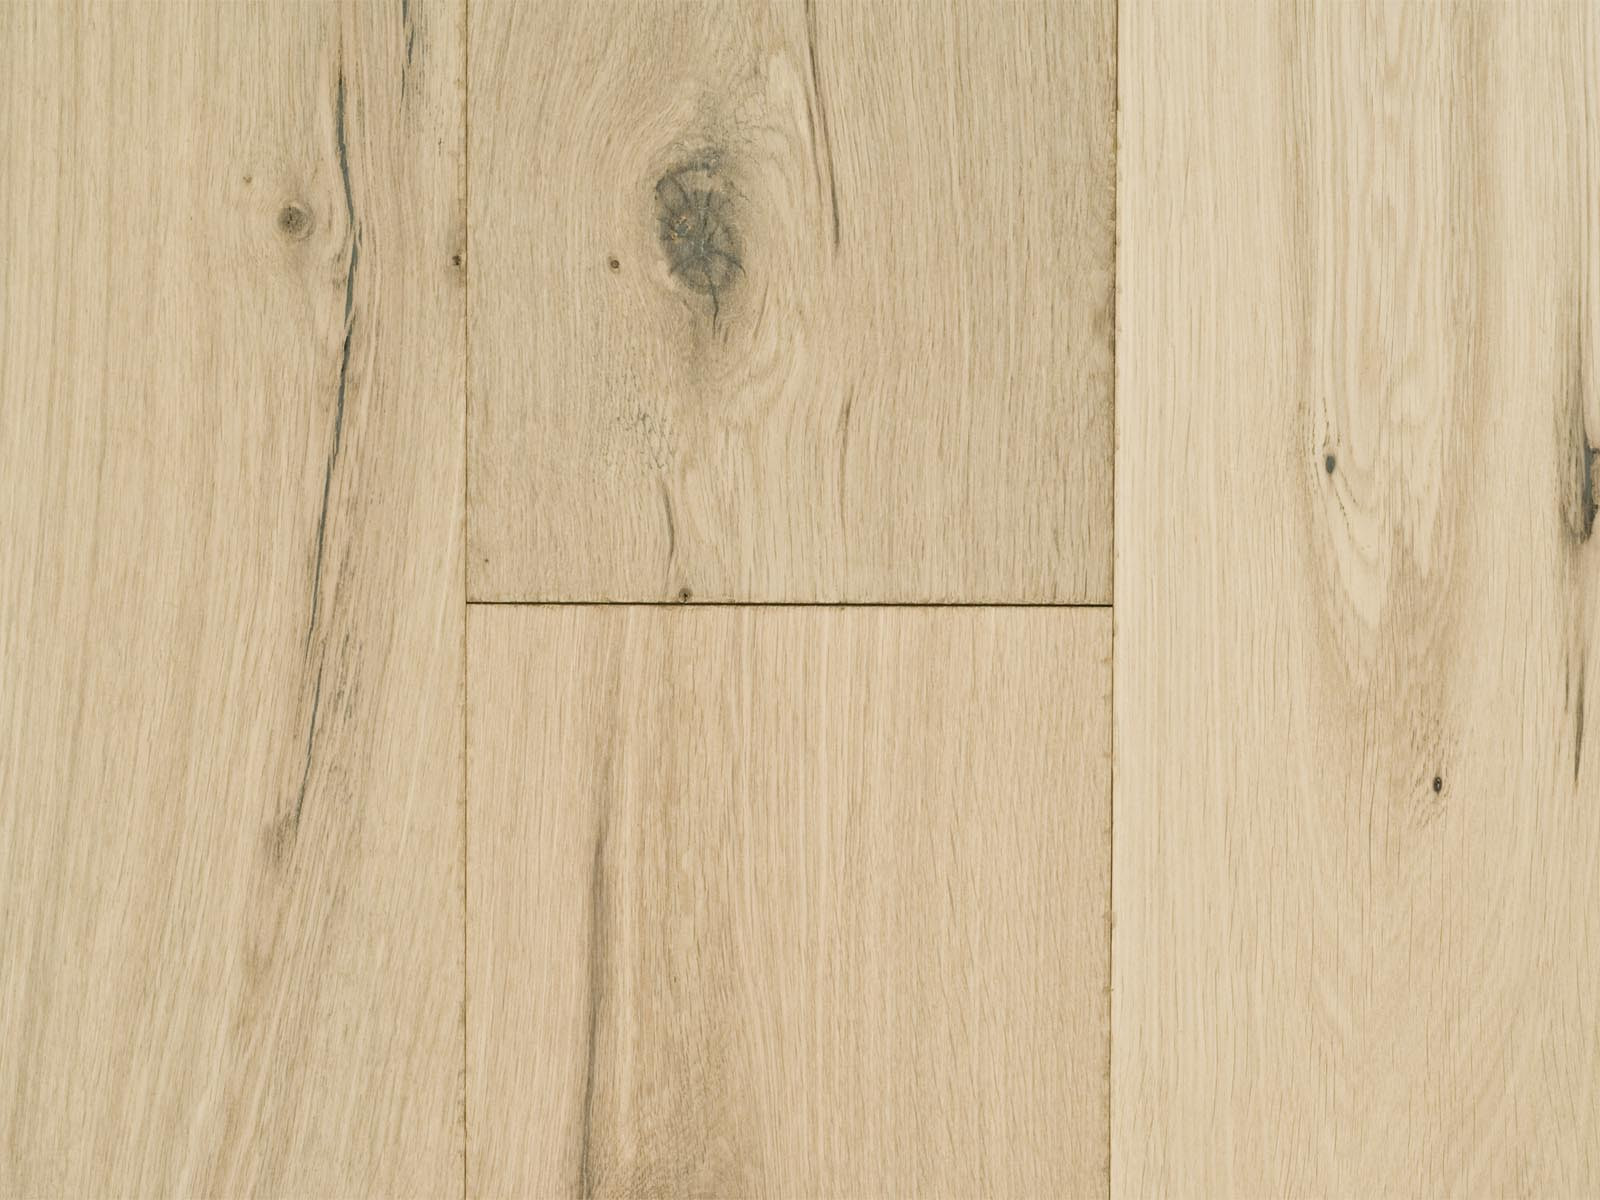 texas hardwood flooring reviews of american relics collection hfcentre with white oiled european oak